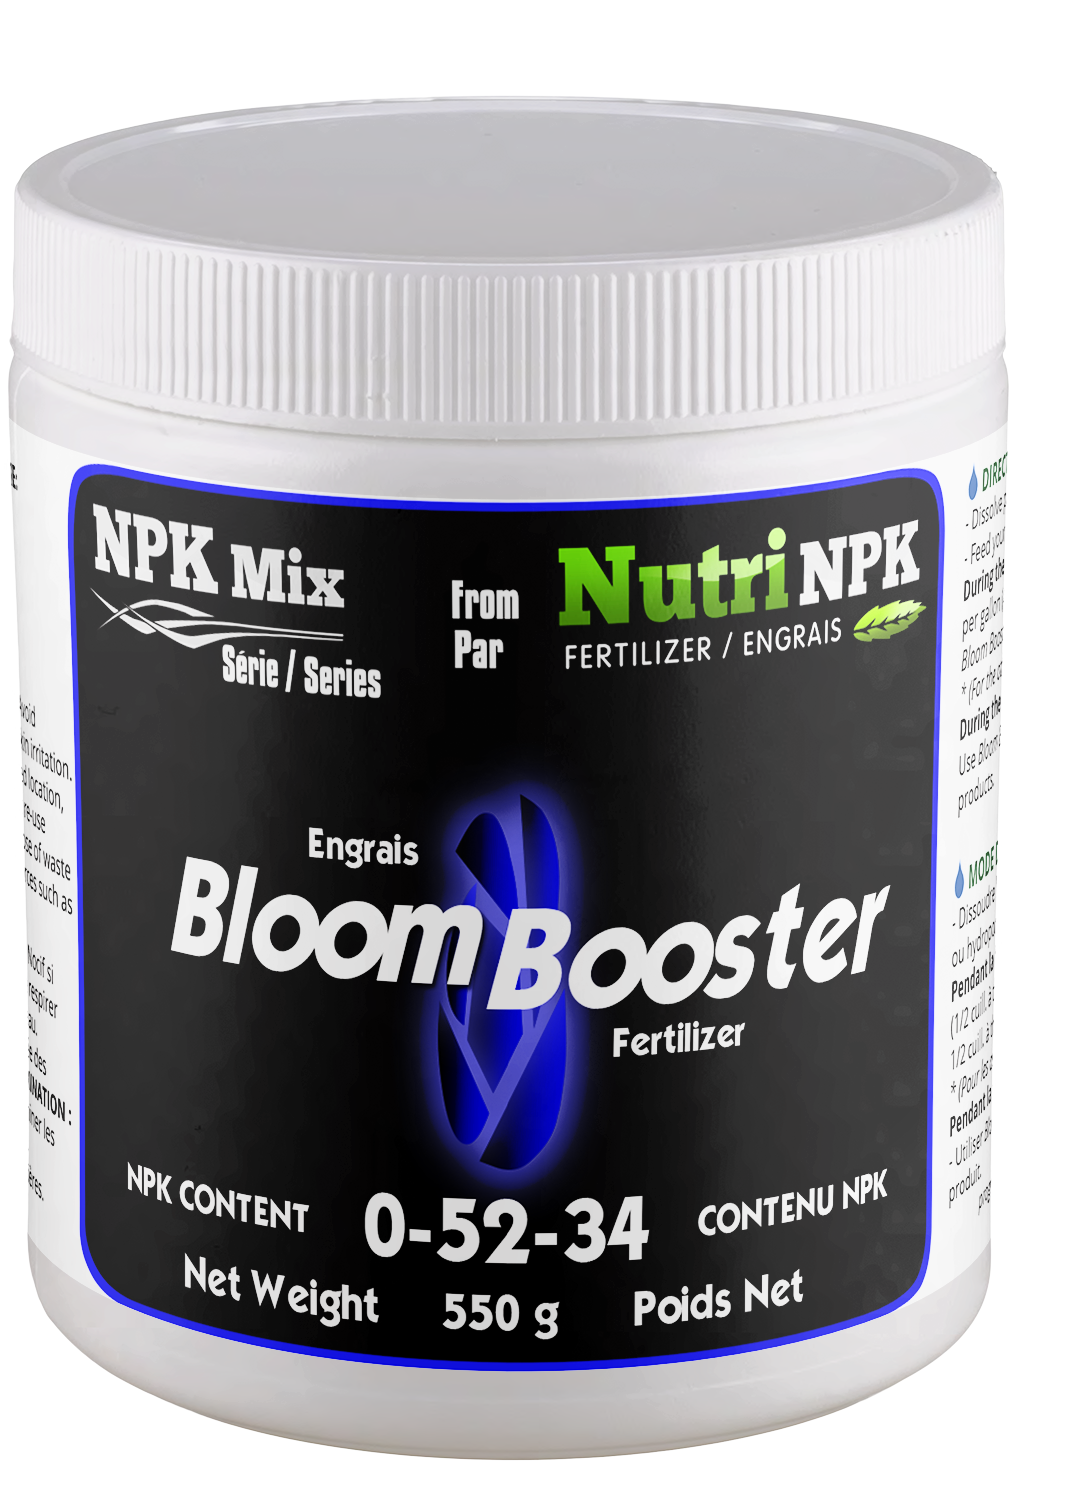 BLOOM BOOSTER Cannabis Fertilizer - NPK Mix by NutriNPK